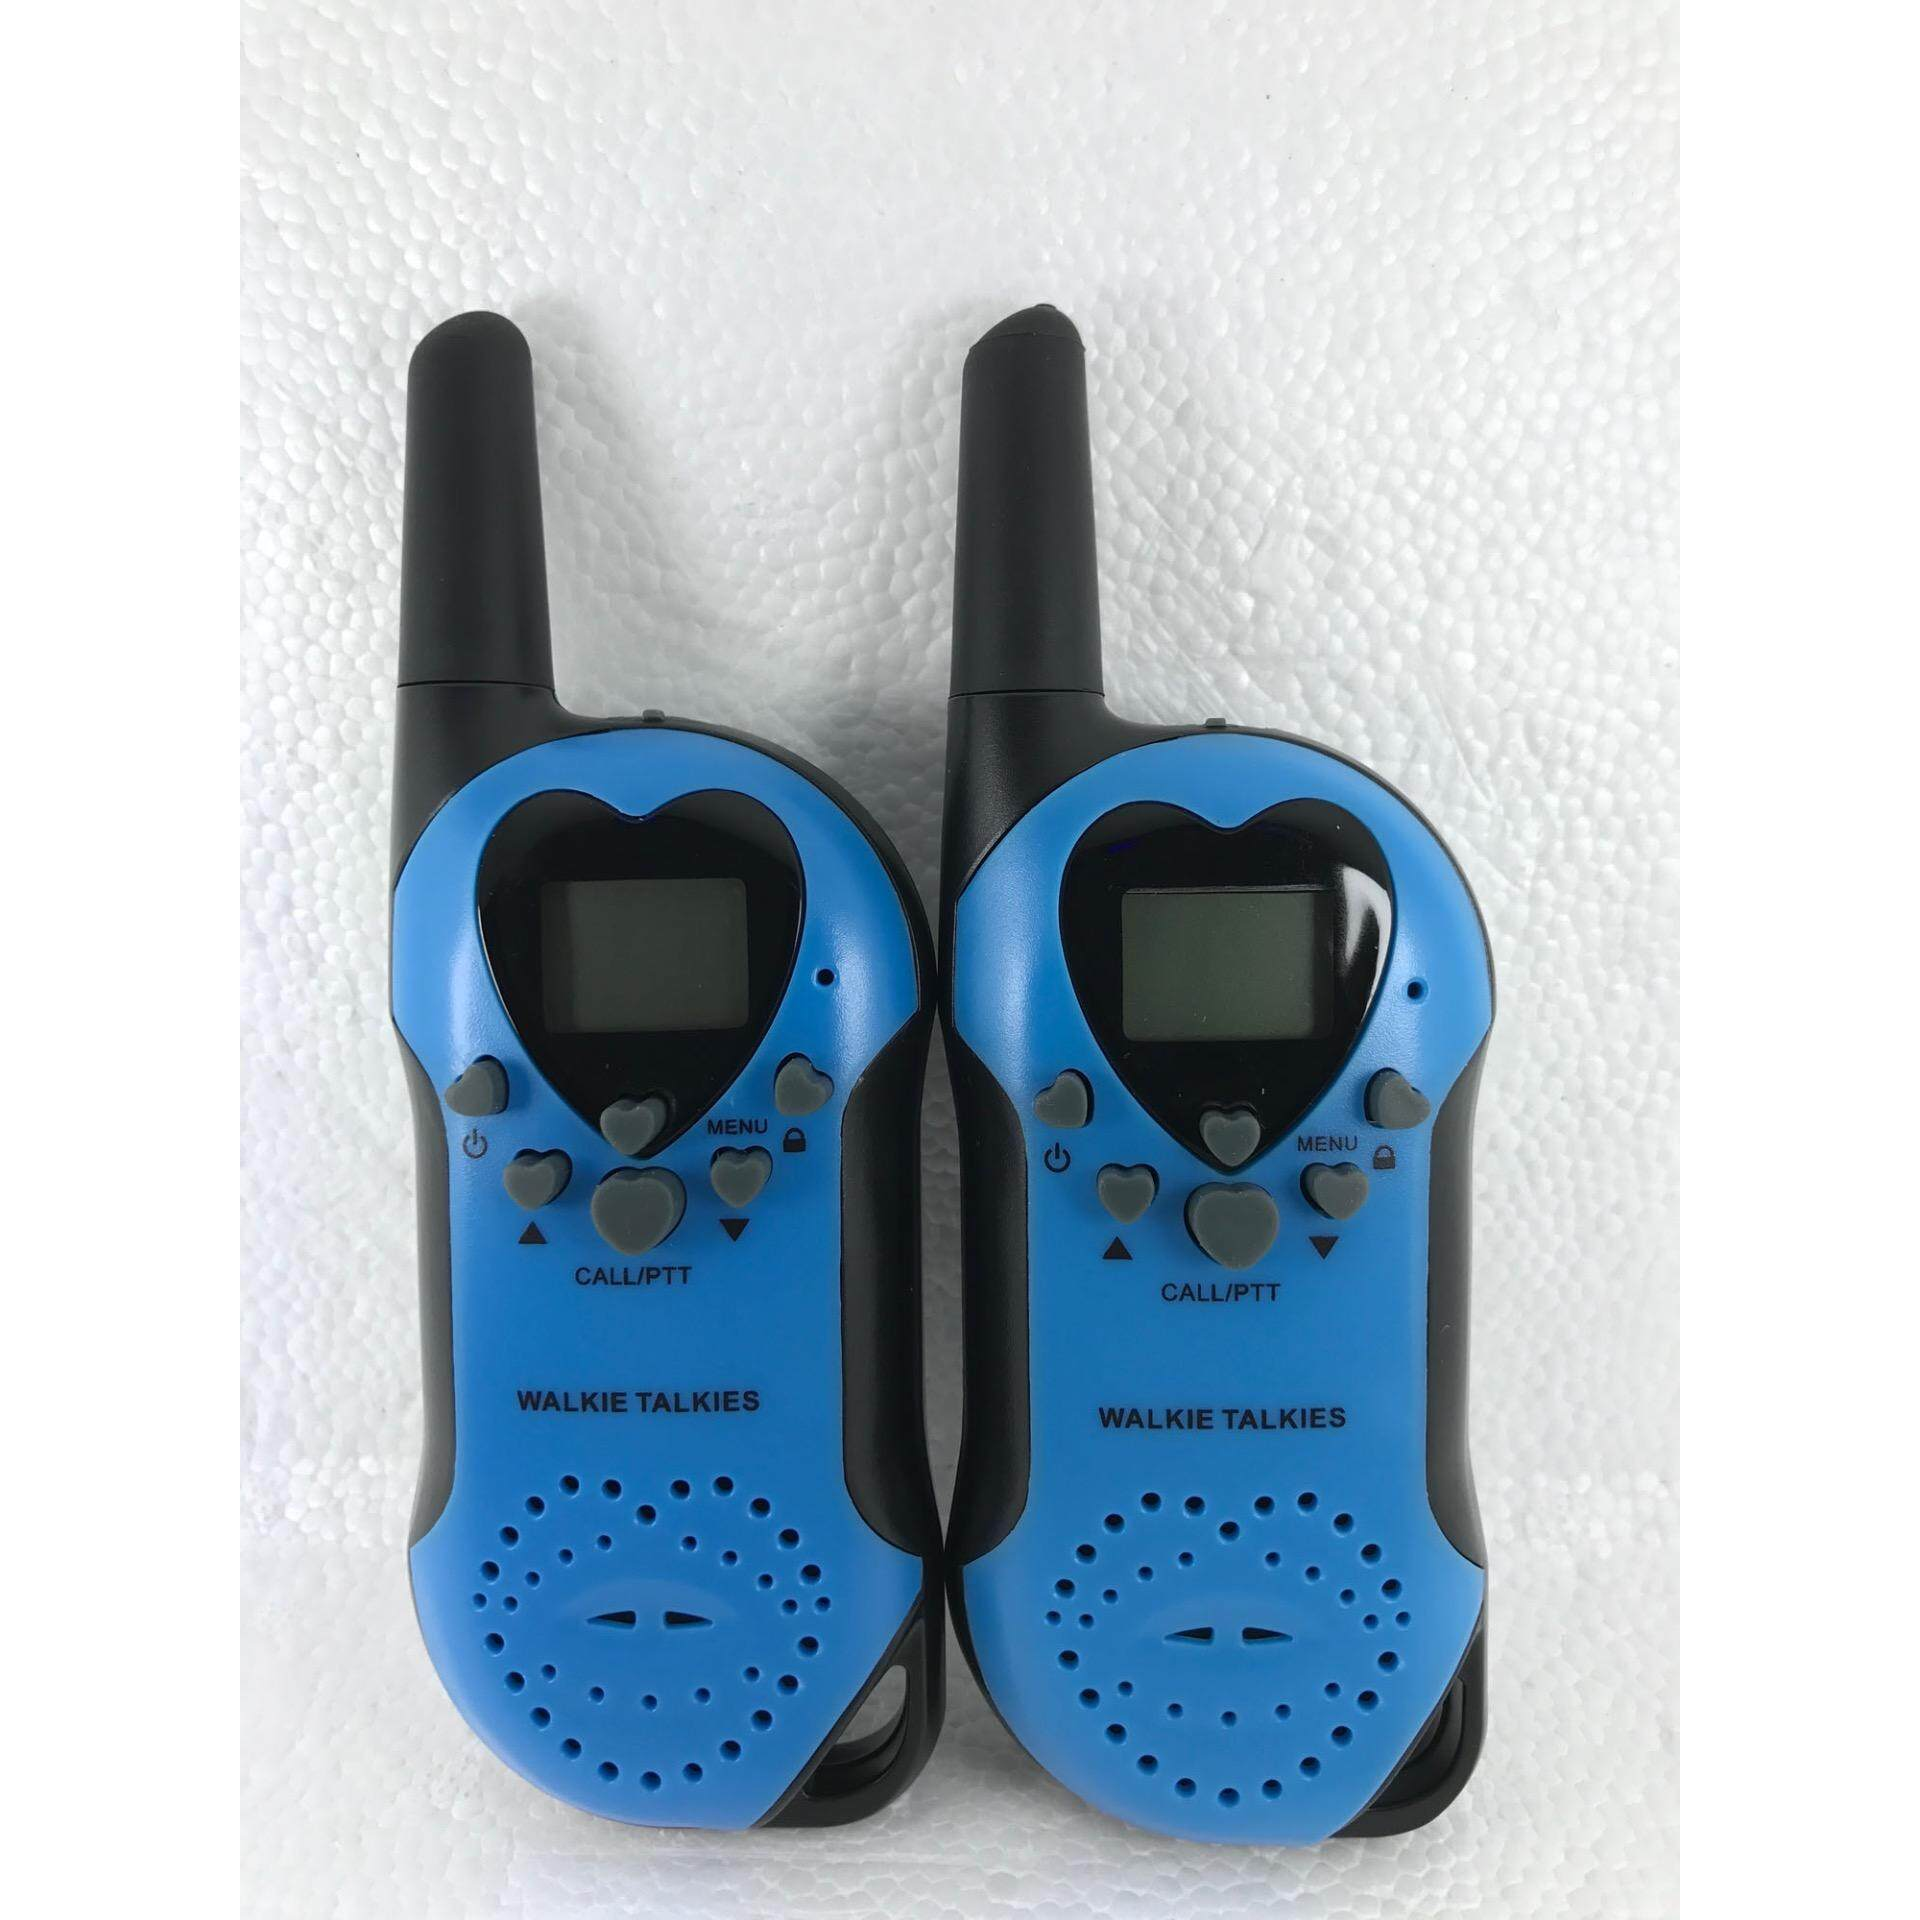 T-6 Walkie Talkie 1 Pair (2 units)